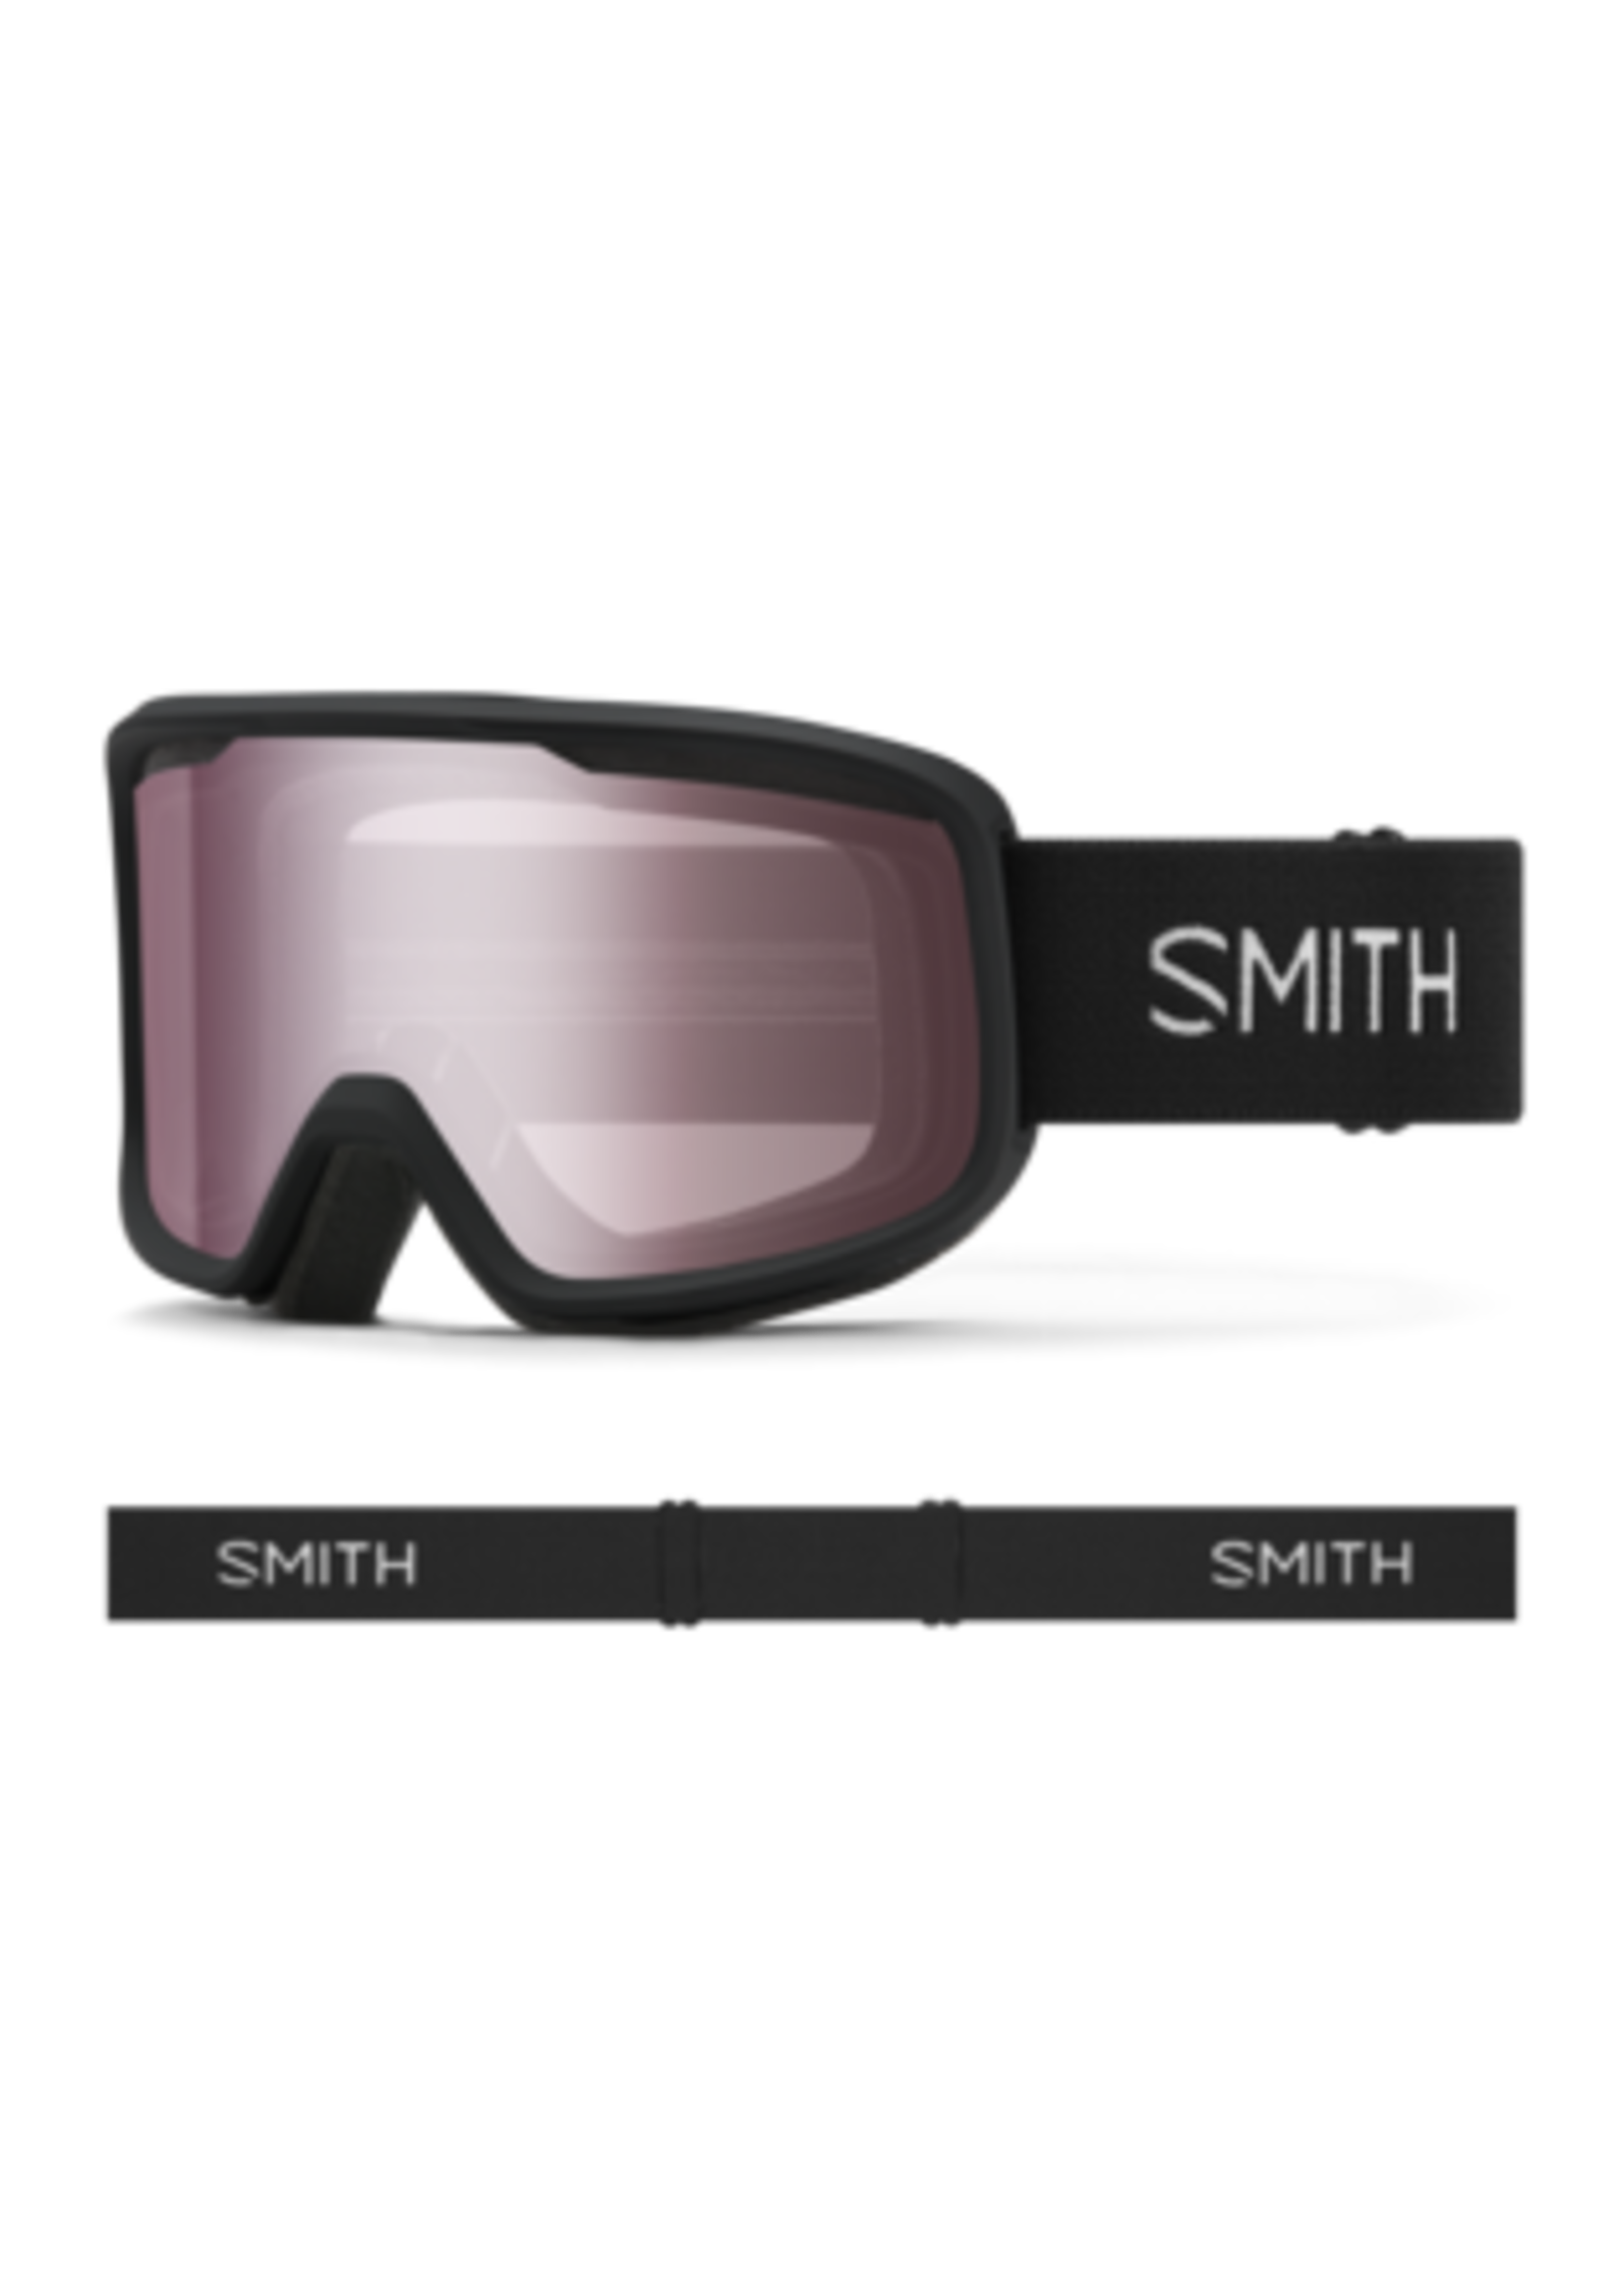 Smith- Frontier